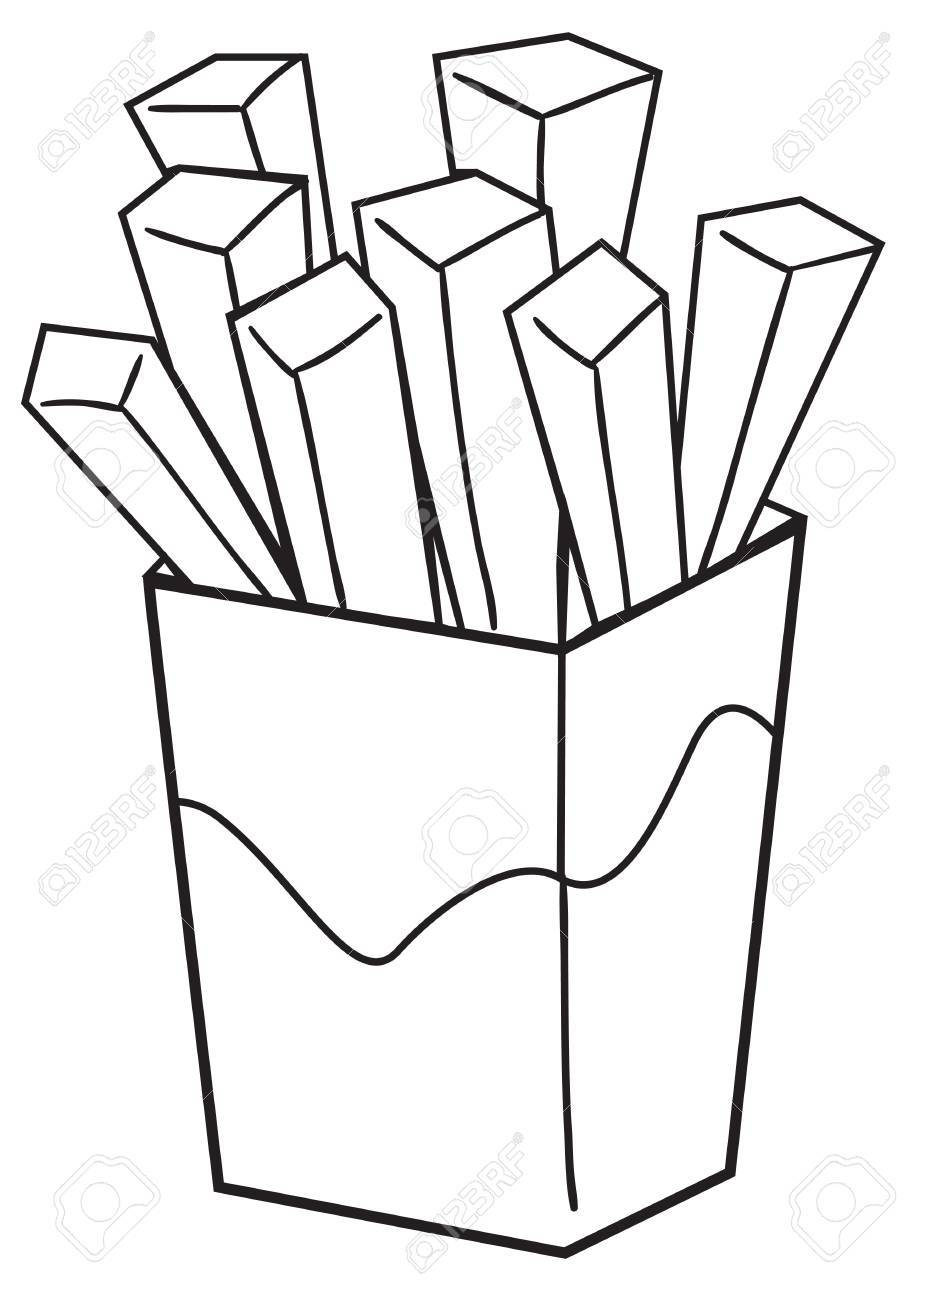 Vector illustration of a french fries in black and white outlined...